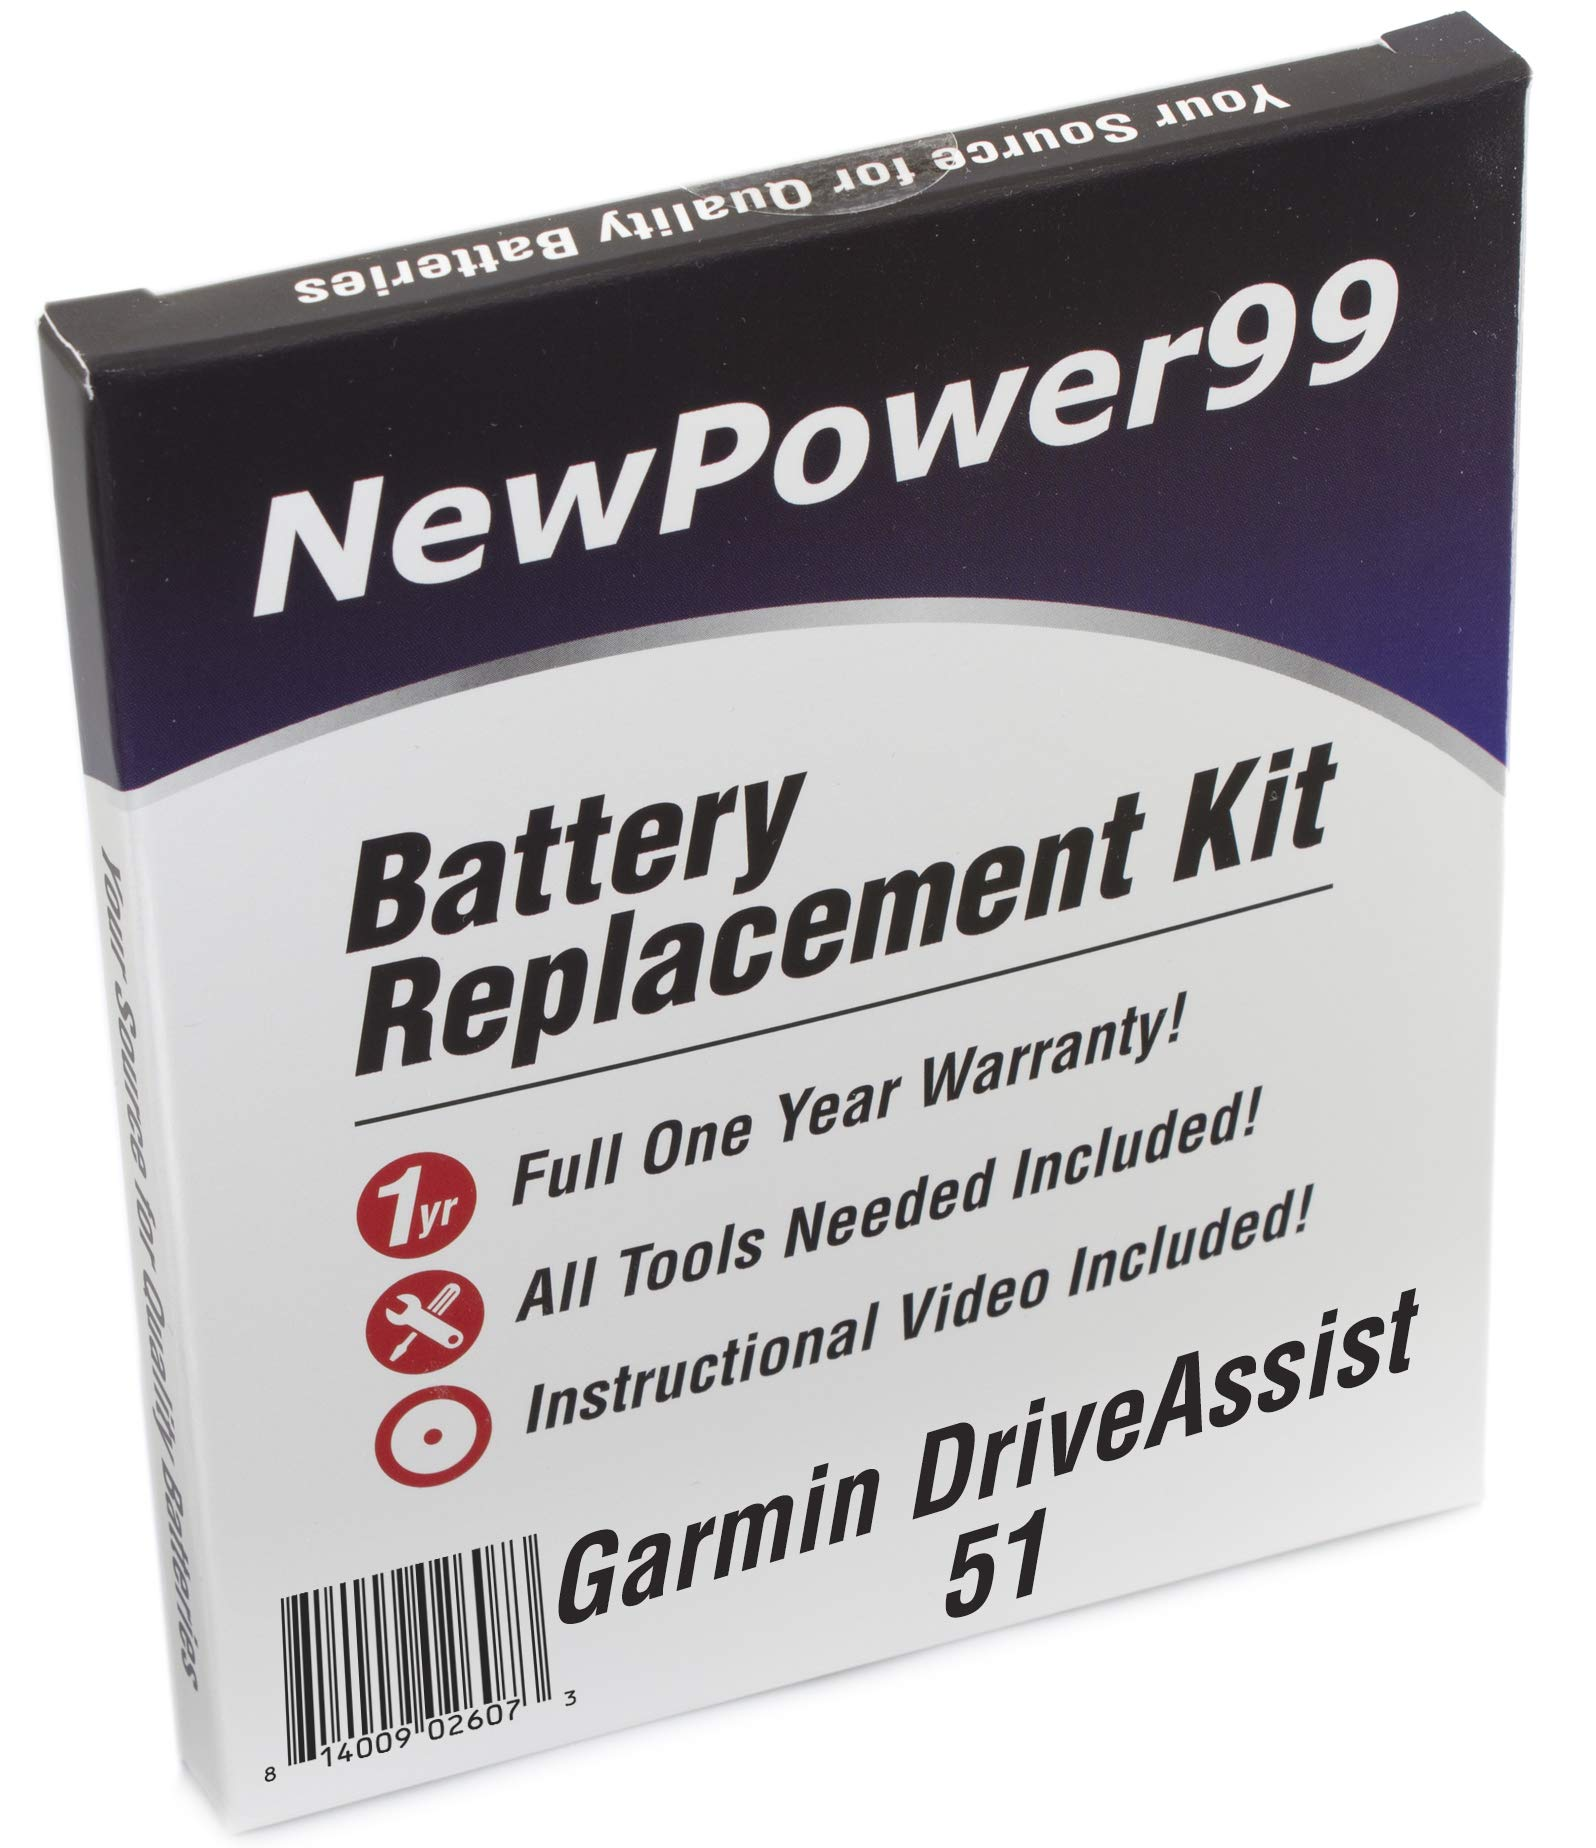 NewPower99 Battery Replacement Kit with Battery, Video Instructions and Tools for Garmin DriveAssist 51